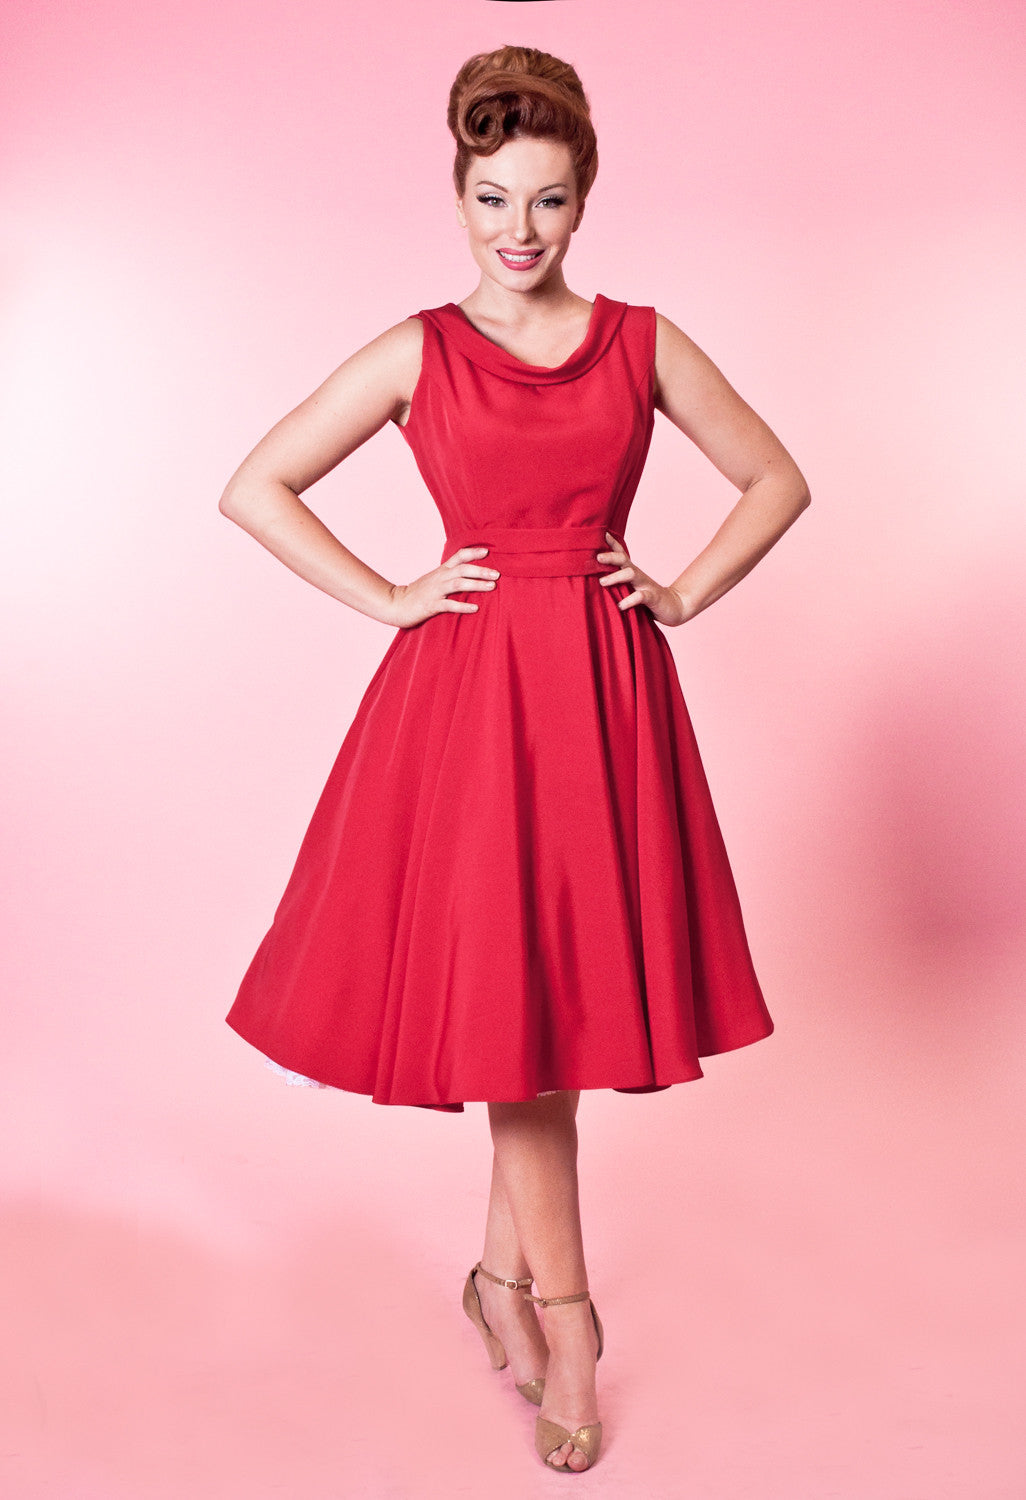 BP Suzette Dress - Tuscany Silkie Red - Heart of Haute  - 2